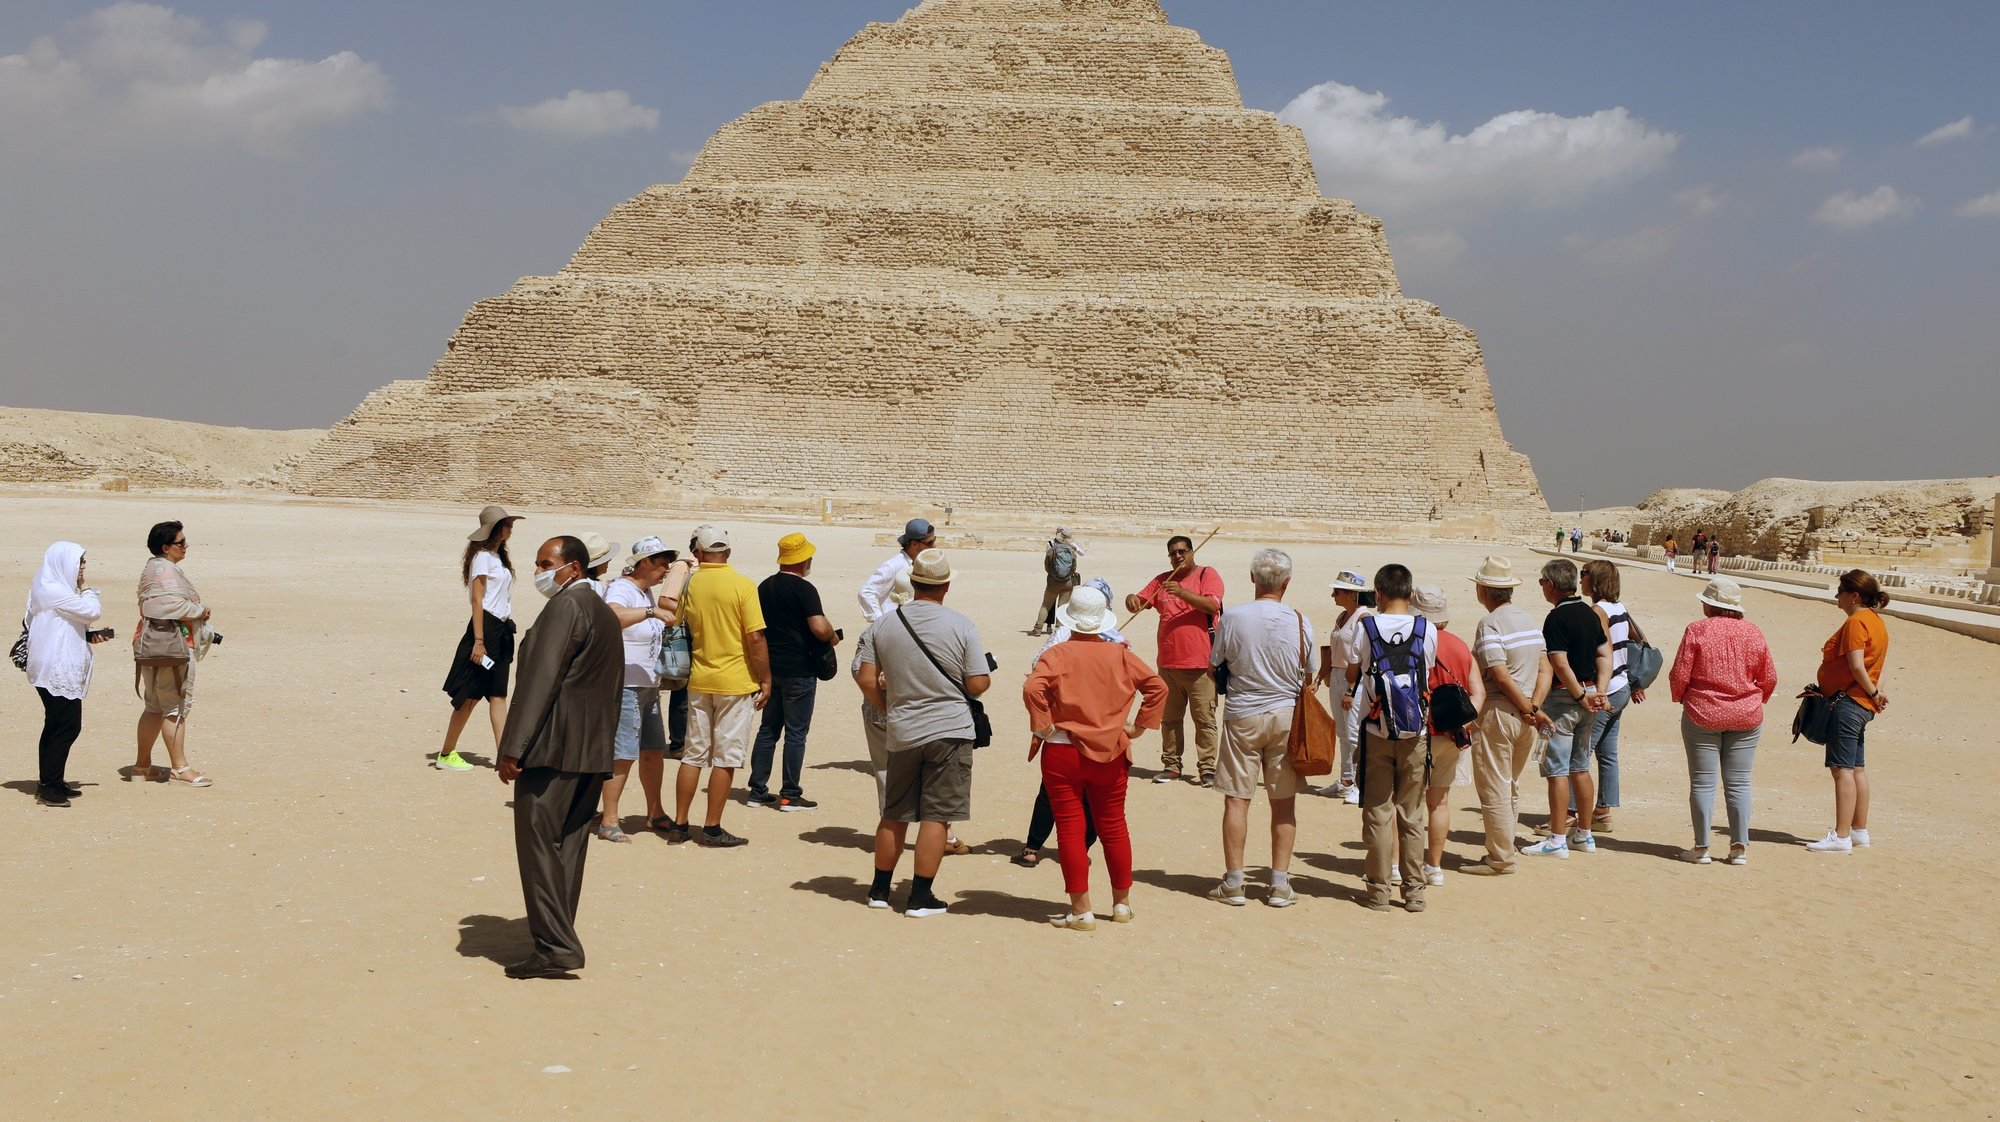 epa09467606 A group of tourists gathers outside Tomb of King Djoser step pyramid, that was reopened for visitors after a restoration, in the Saqqara area, near Giza, Egypt, 14 September 2021. An information plate by the Ministry of Tourism & Antiques at the entrance of the site describes the ancient Southern Tomb step pyramid, also known as the Saqqara pyramid, as being 'the oldest stone building of the ancient world' which was 'discovered by the English archaeologist Cecil Malaby Firth in 1928.' A series of corridors with even some false doors are described as the 'most important architectual and decorative elements' in the tomb that also features a 7.5 x 7.5m burial chamber at a depth of some 31 meters with a sarcophagus made of 16 blocks of pink granite and a height of about 3.6 meters.  EPA/KHALED ELFIQI  HANDOUT EDITORIAL USE ONLY/NO SALES